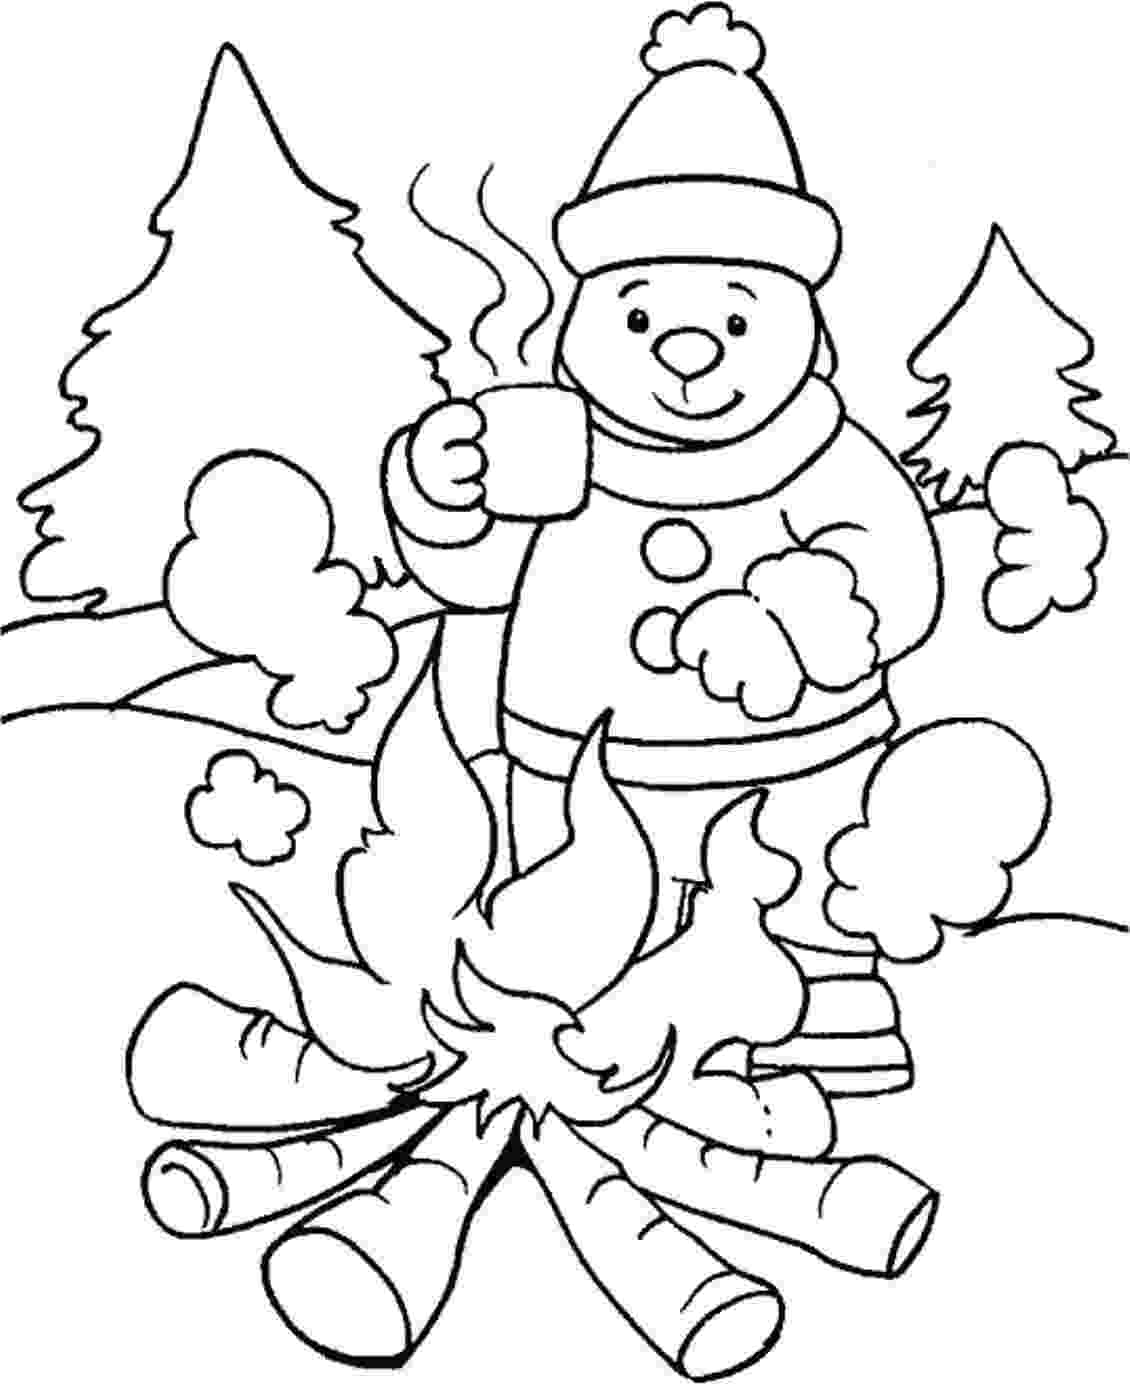 winter printable coloring pages winter coloring pages to download and print for free printable pages winter coloring